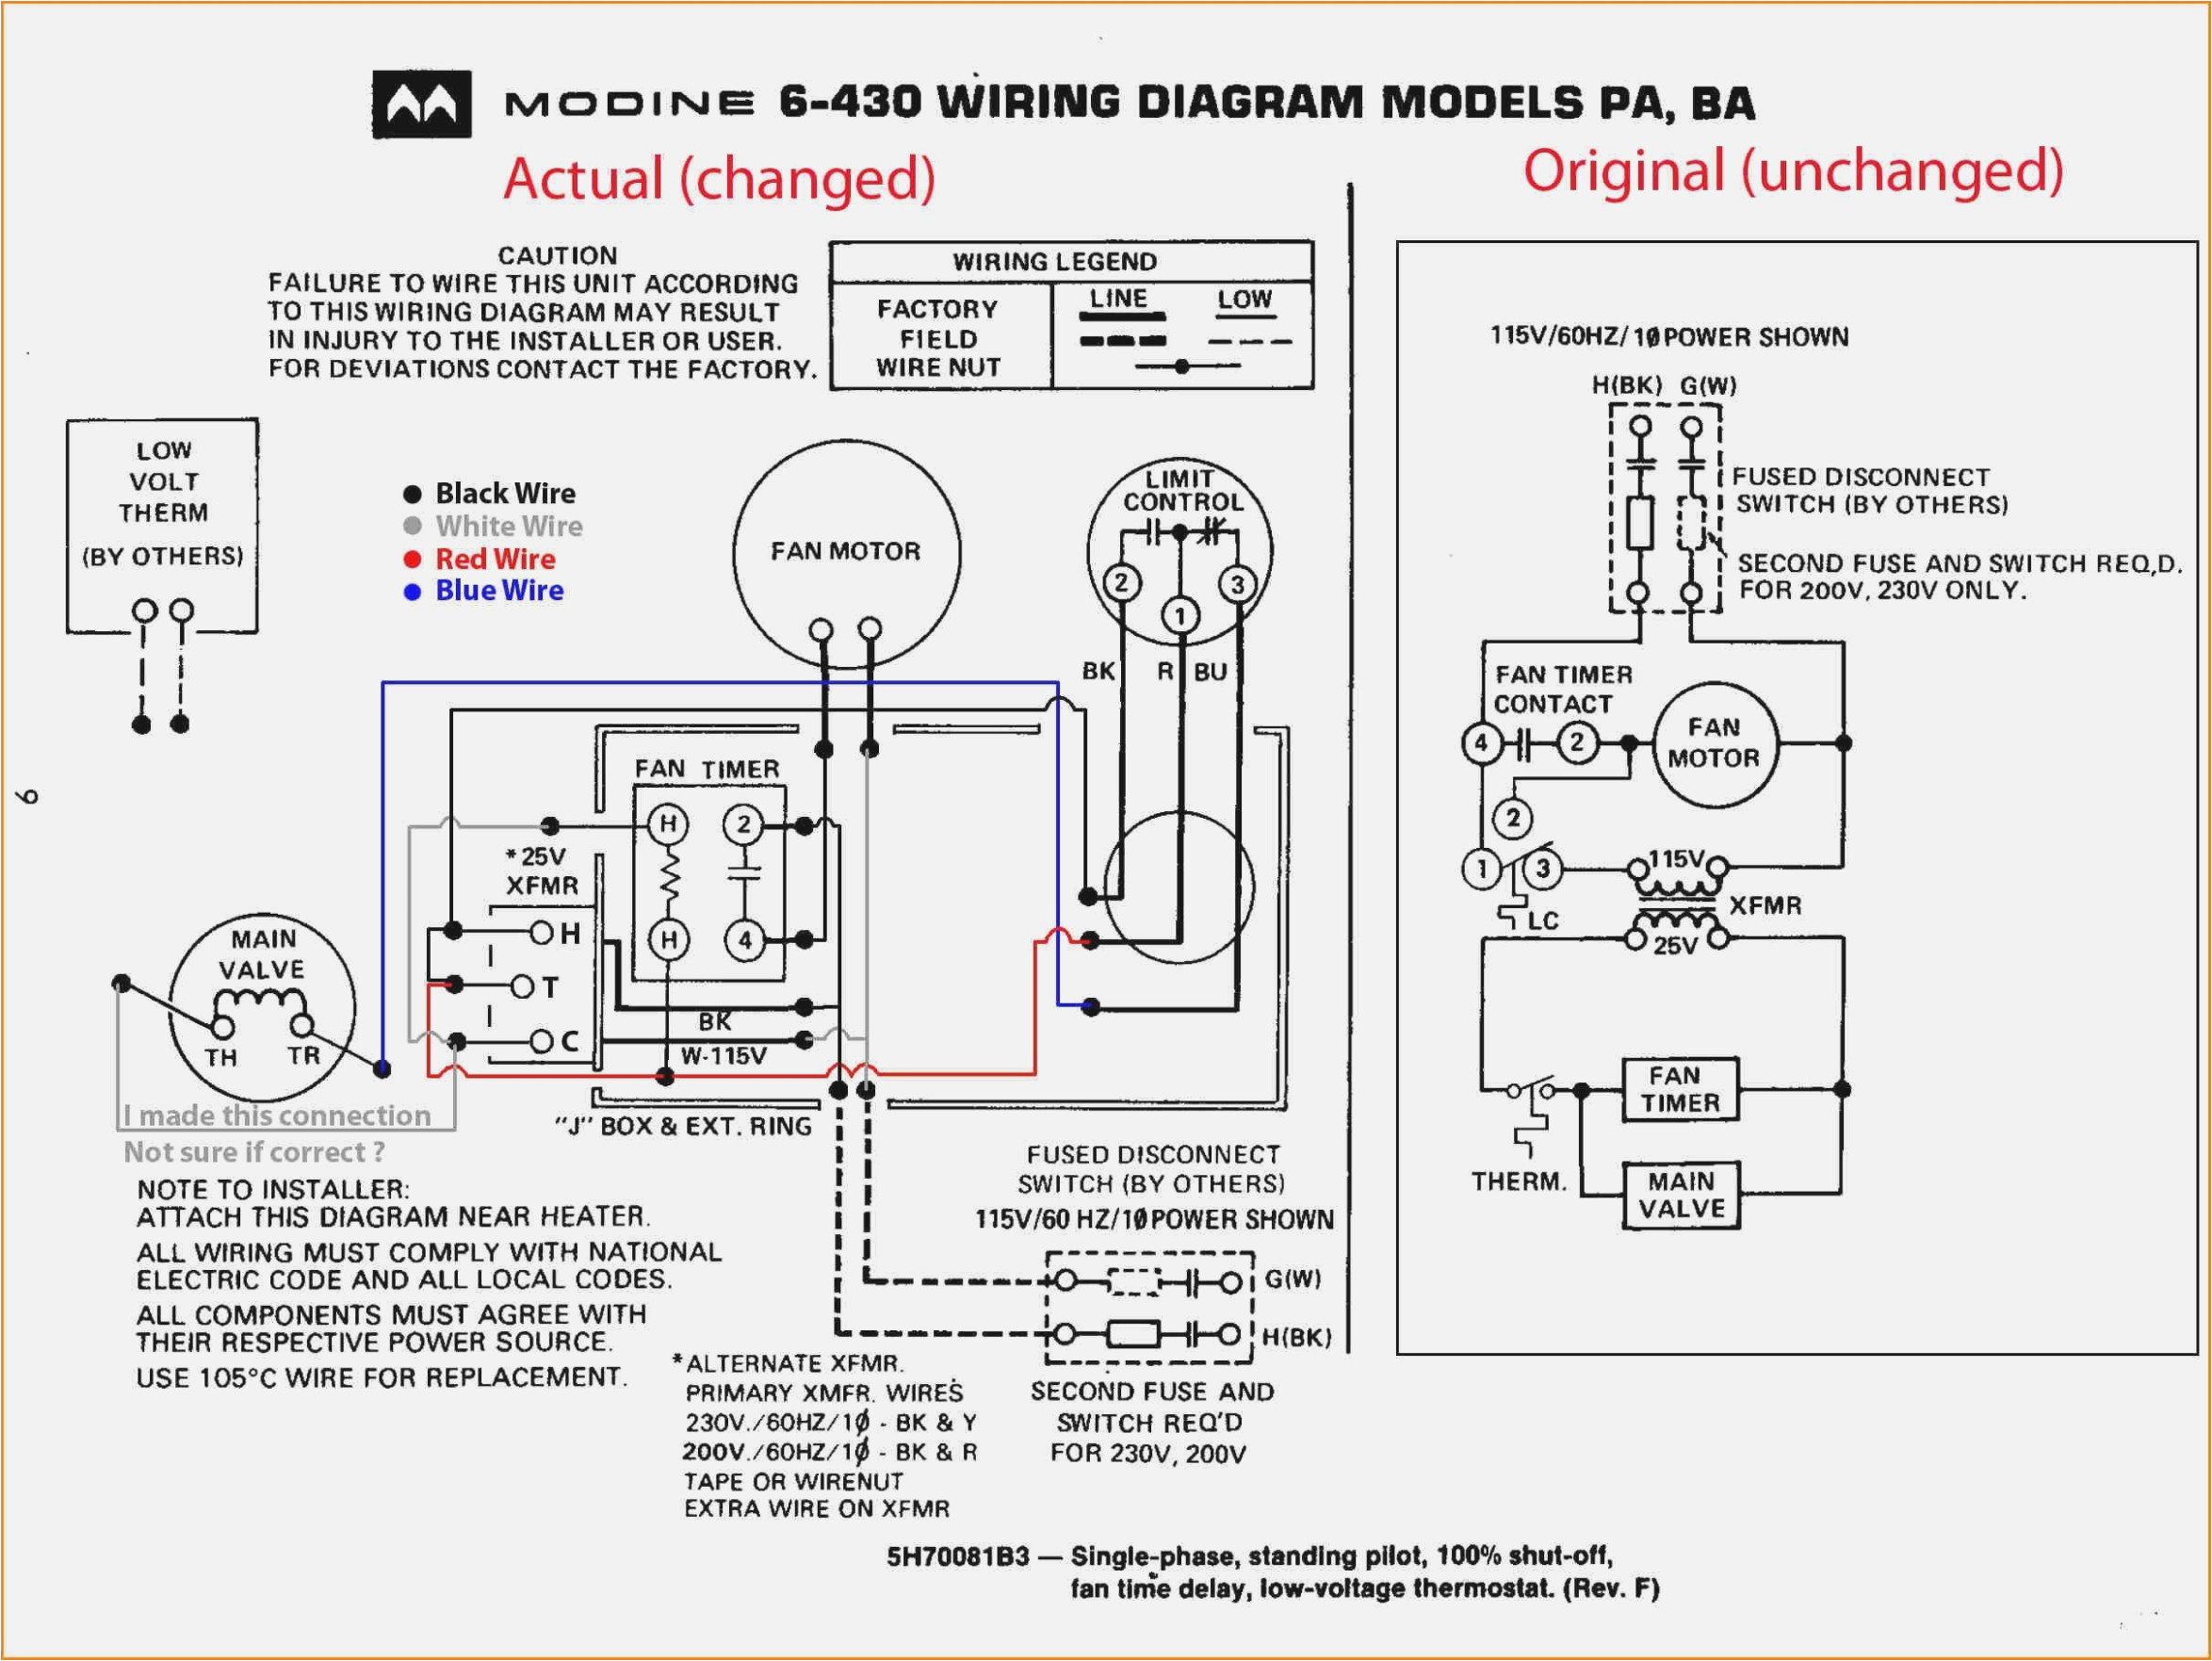 motor wiring diagram 19 wiring diagram view 1964 corvette wiper motor wiring diagram motor wiring diagram 19